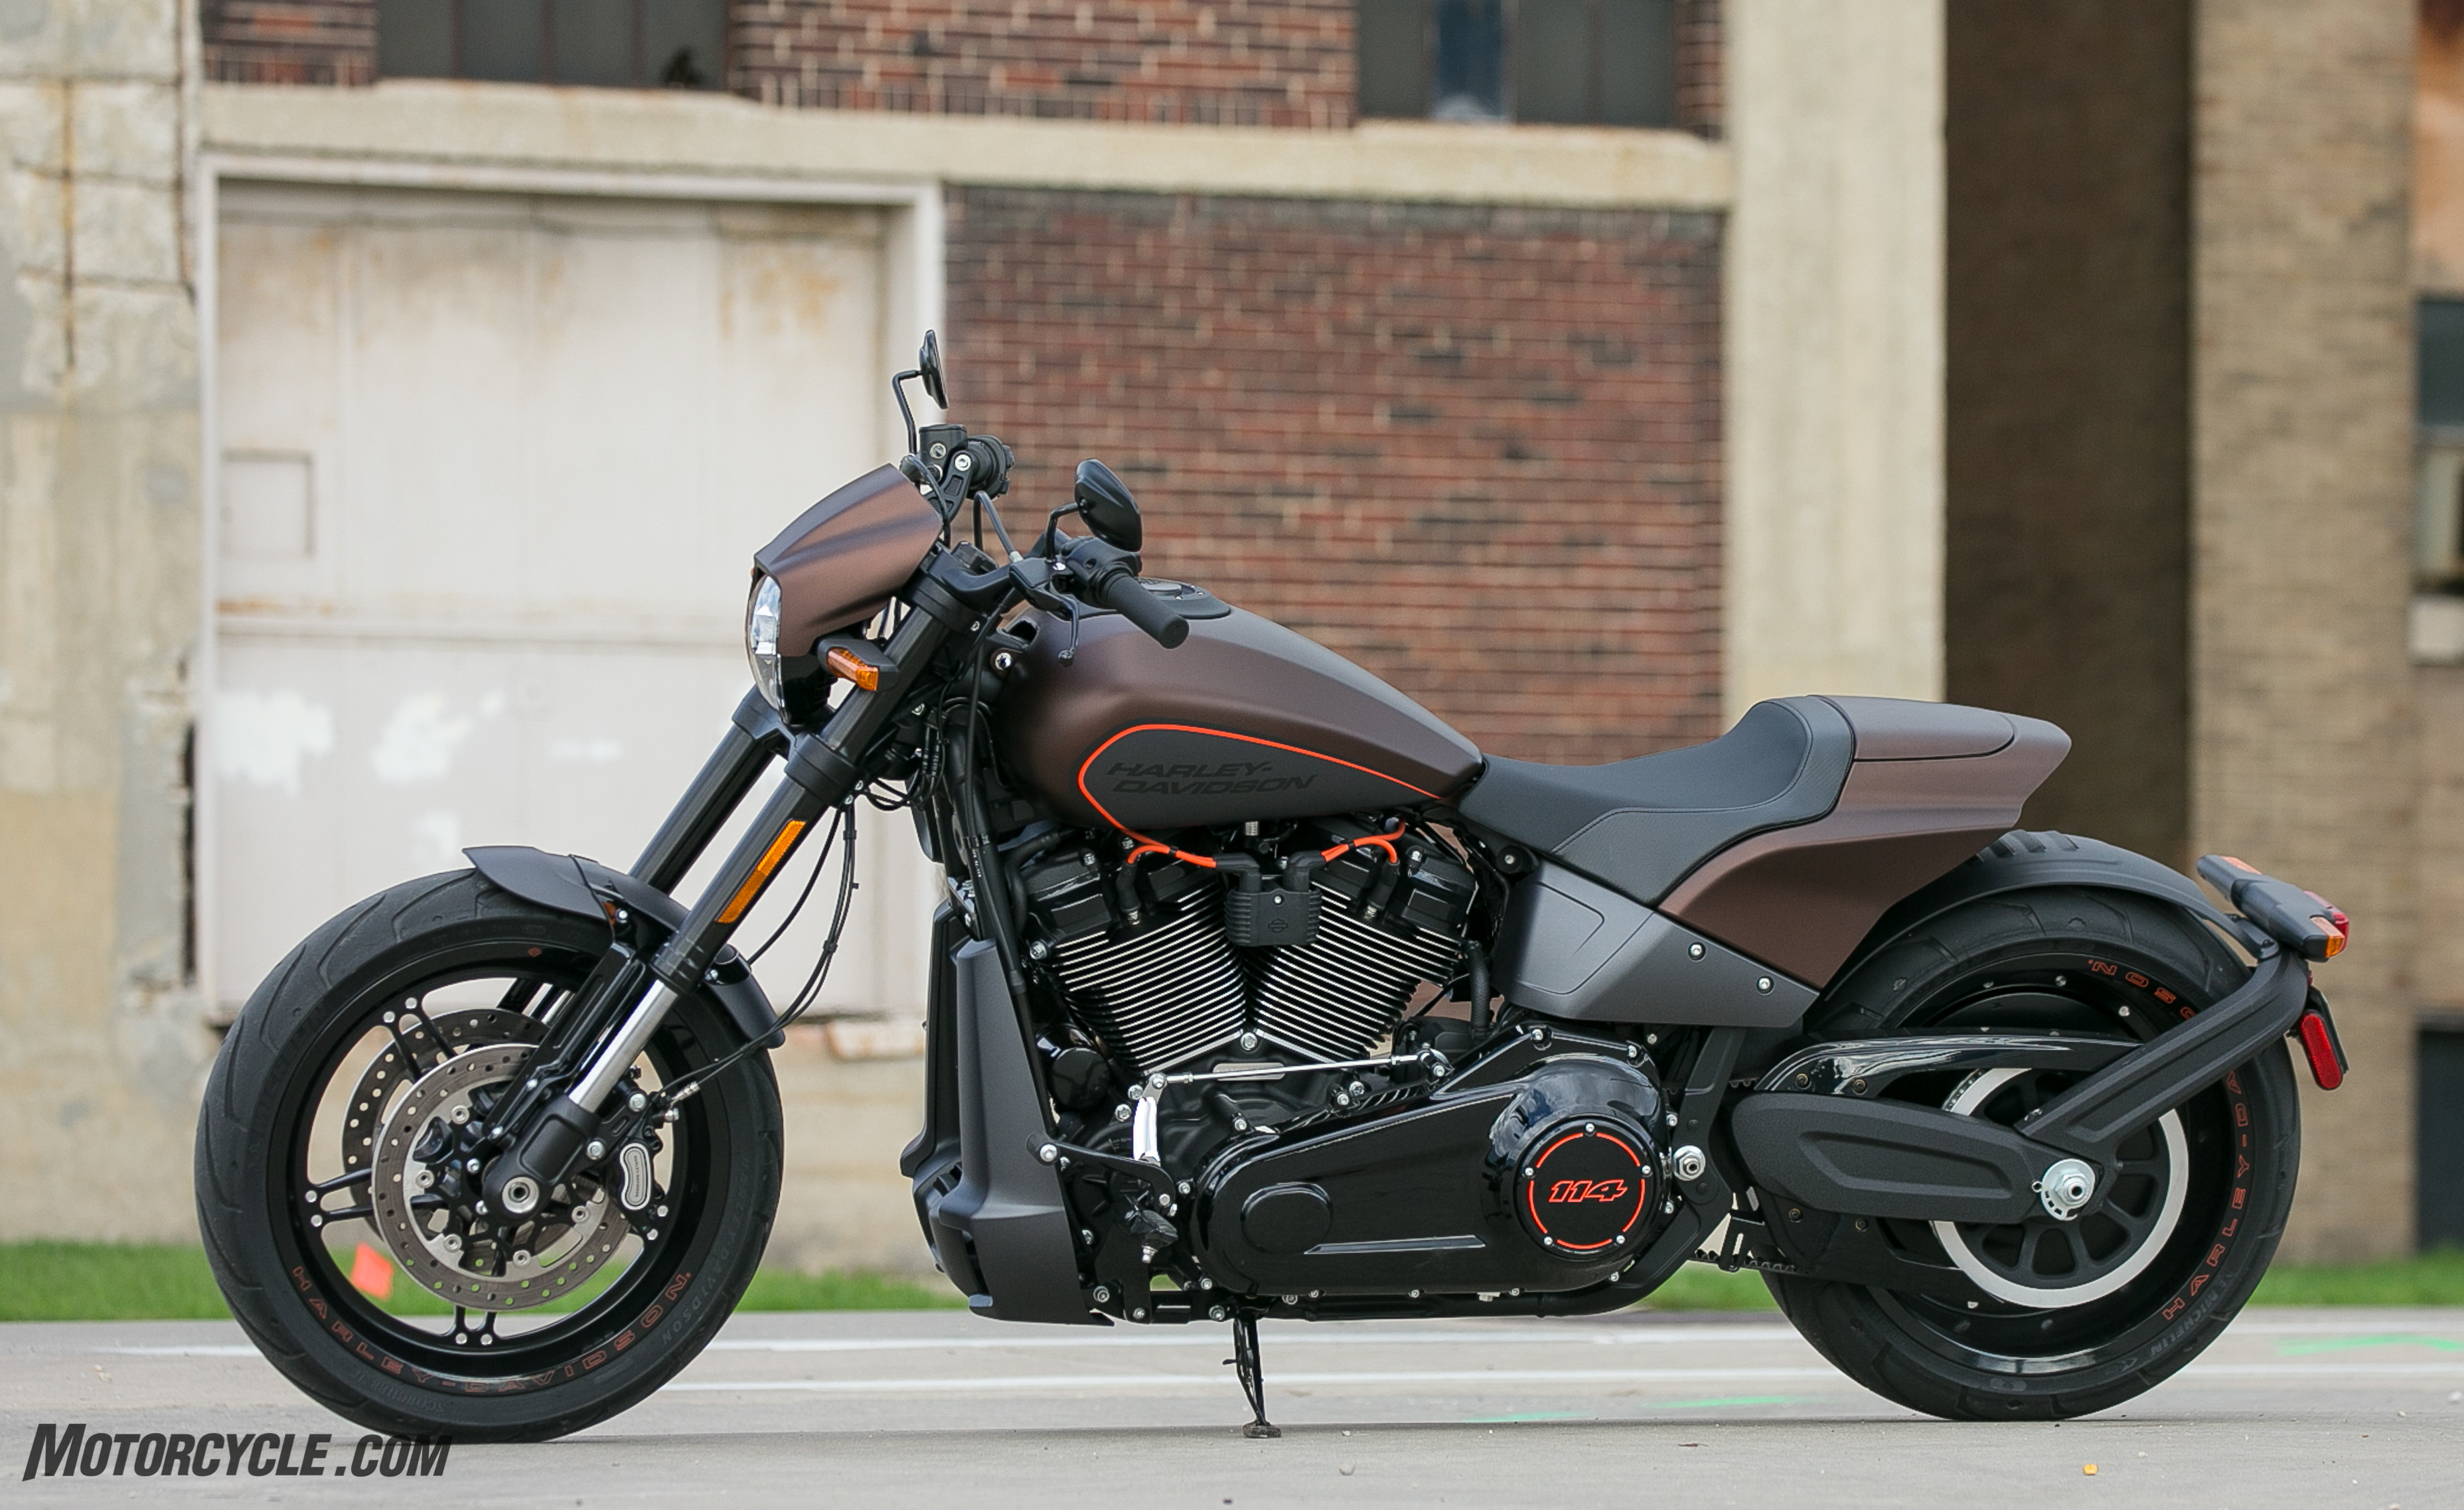 New 2019 Harley Davidson Fxdr 114 Motorcycles In: 2019 Harley-Davidson FXDR 114 Review